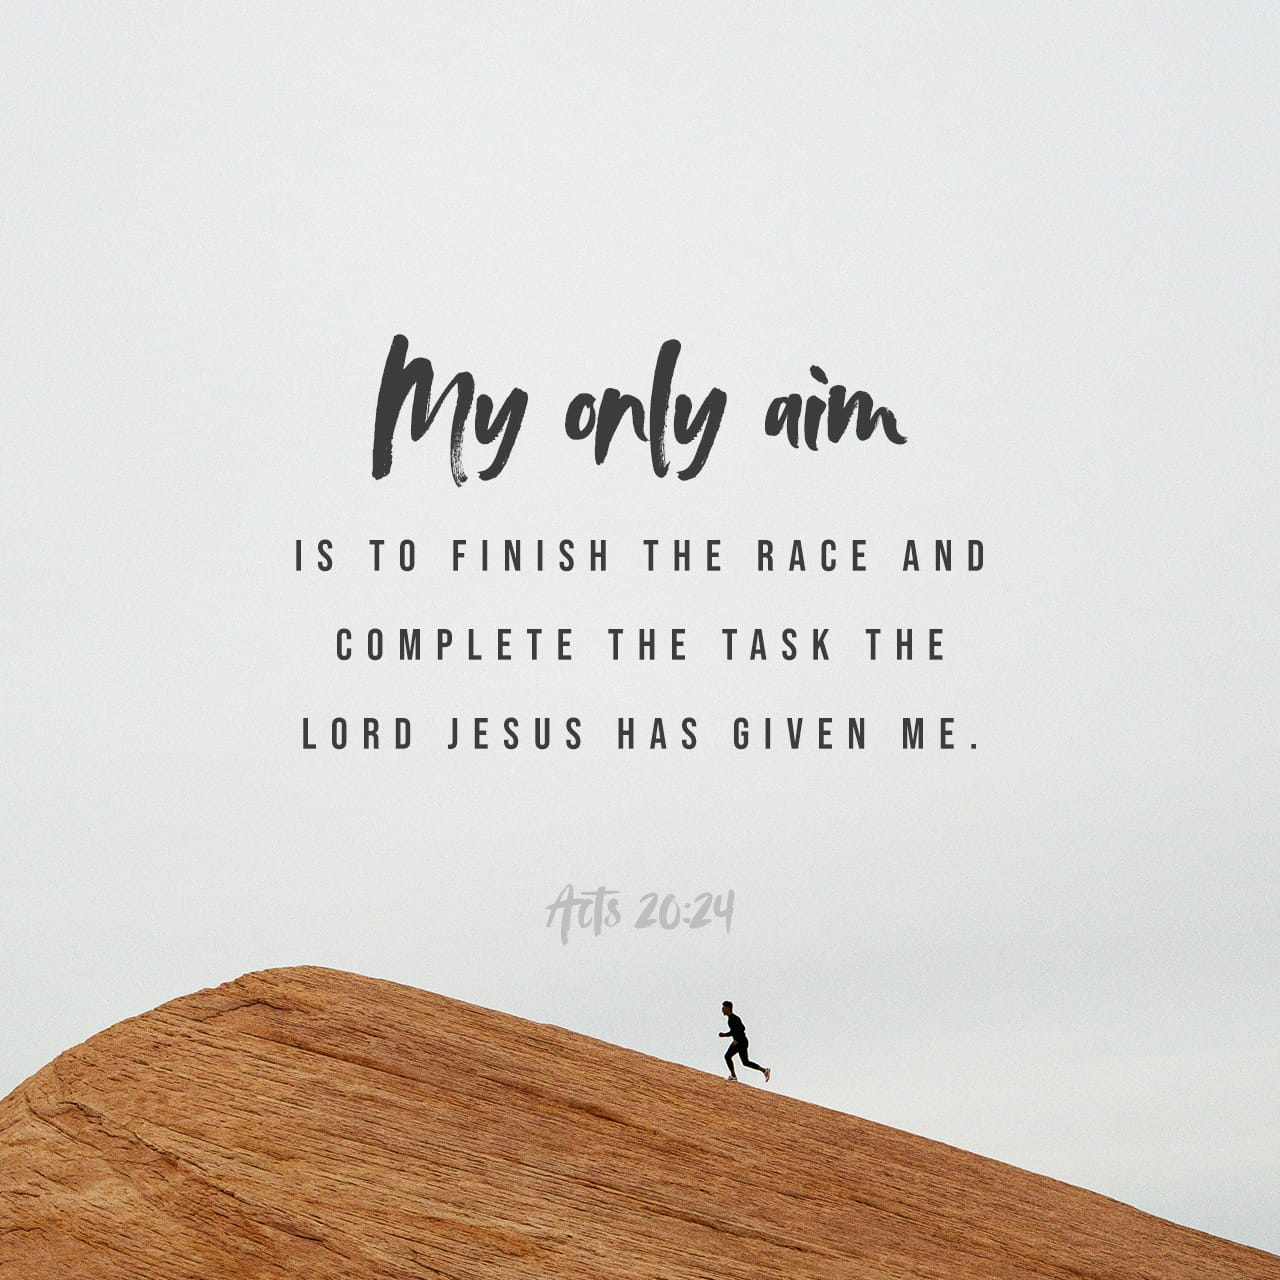 Acts 20:24 But none of these things move me, neither count I my life dear unto myself, so that I might finish my course with joy, and the ministry, which I have received of the Lord Jesus, to testify the gospel | King James Version (KJV)